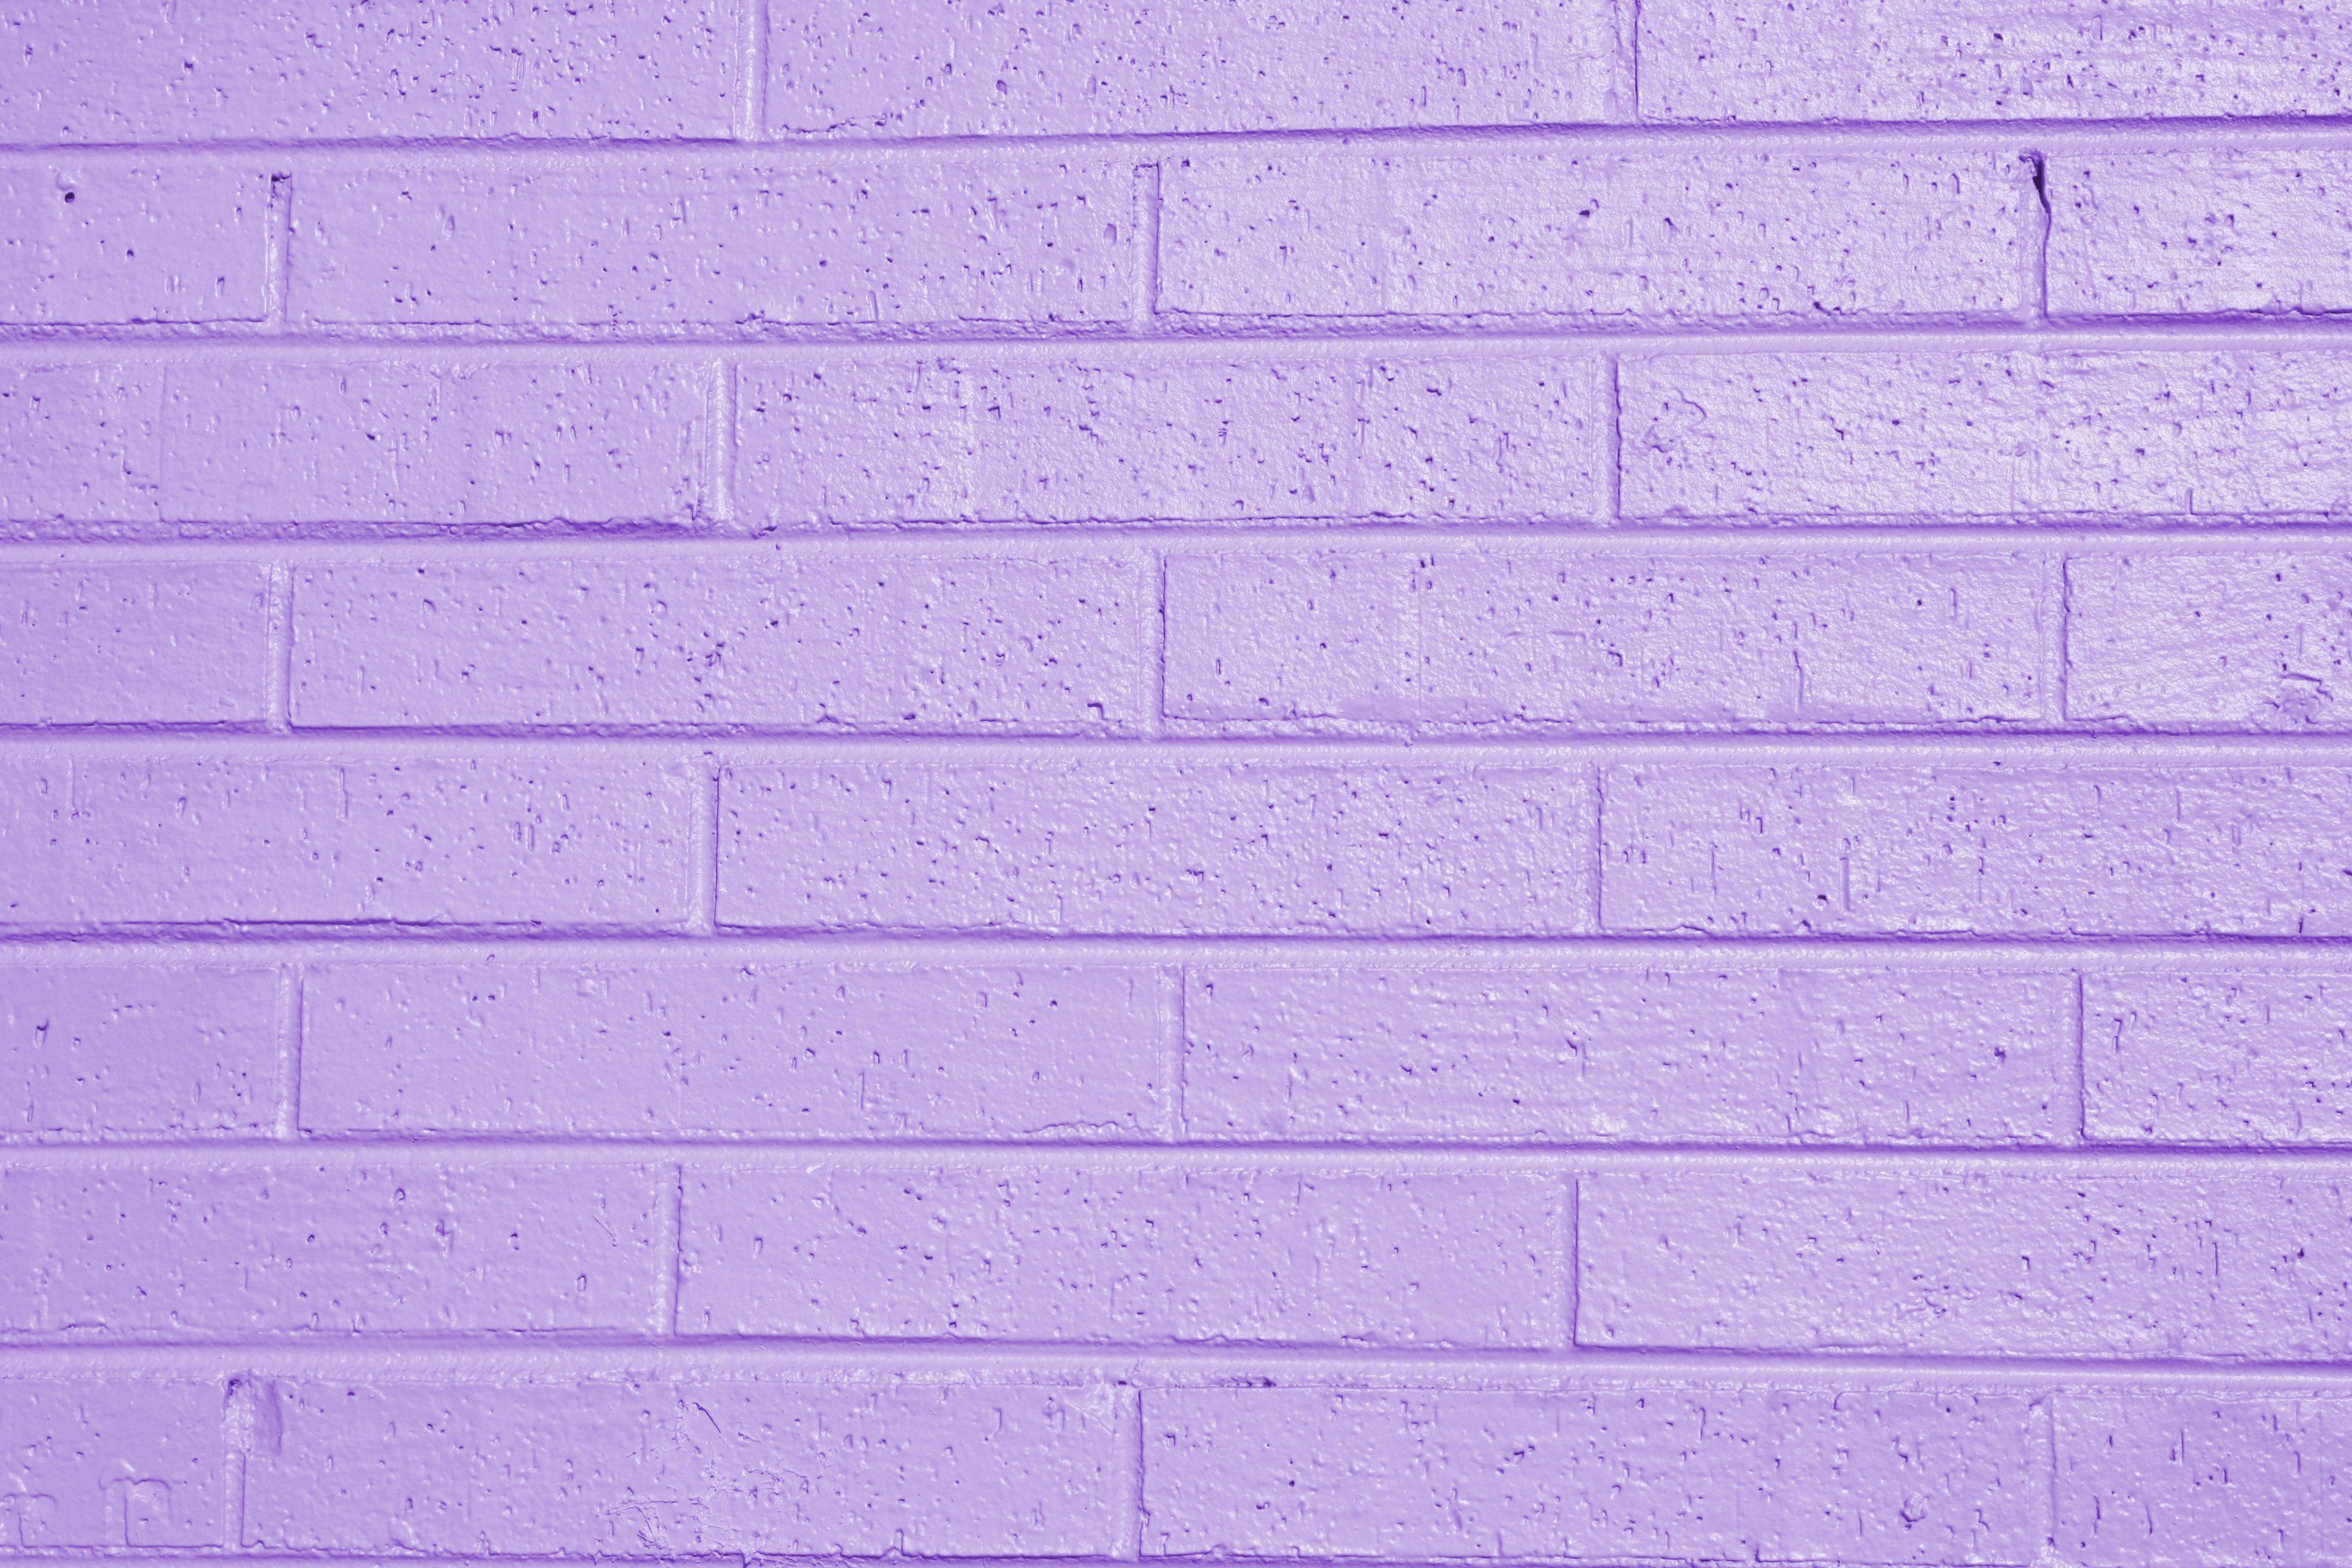 Lilac Or Lavender Painted Brick Wall Texture Free Printables In - Color-lila-pastel